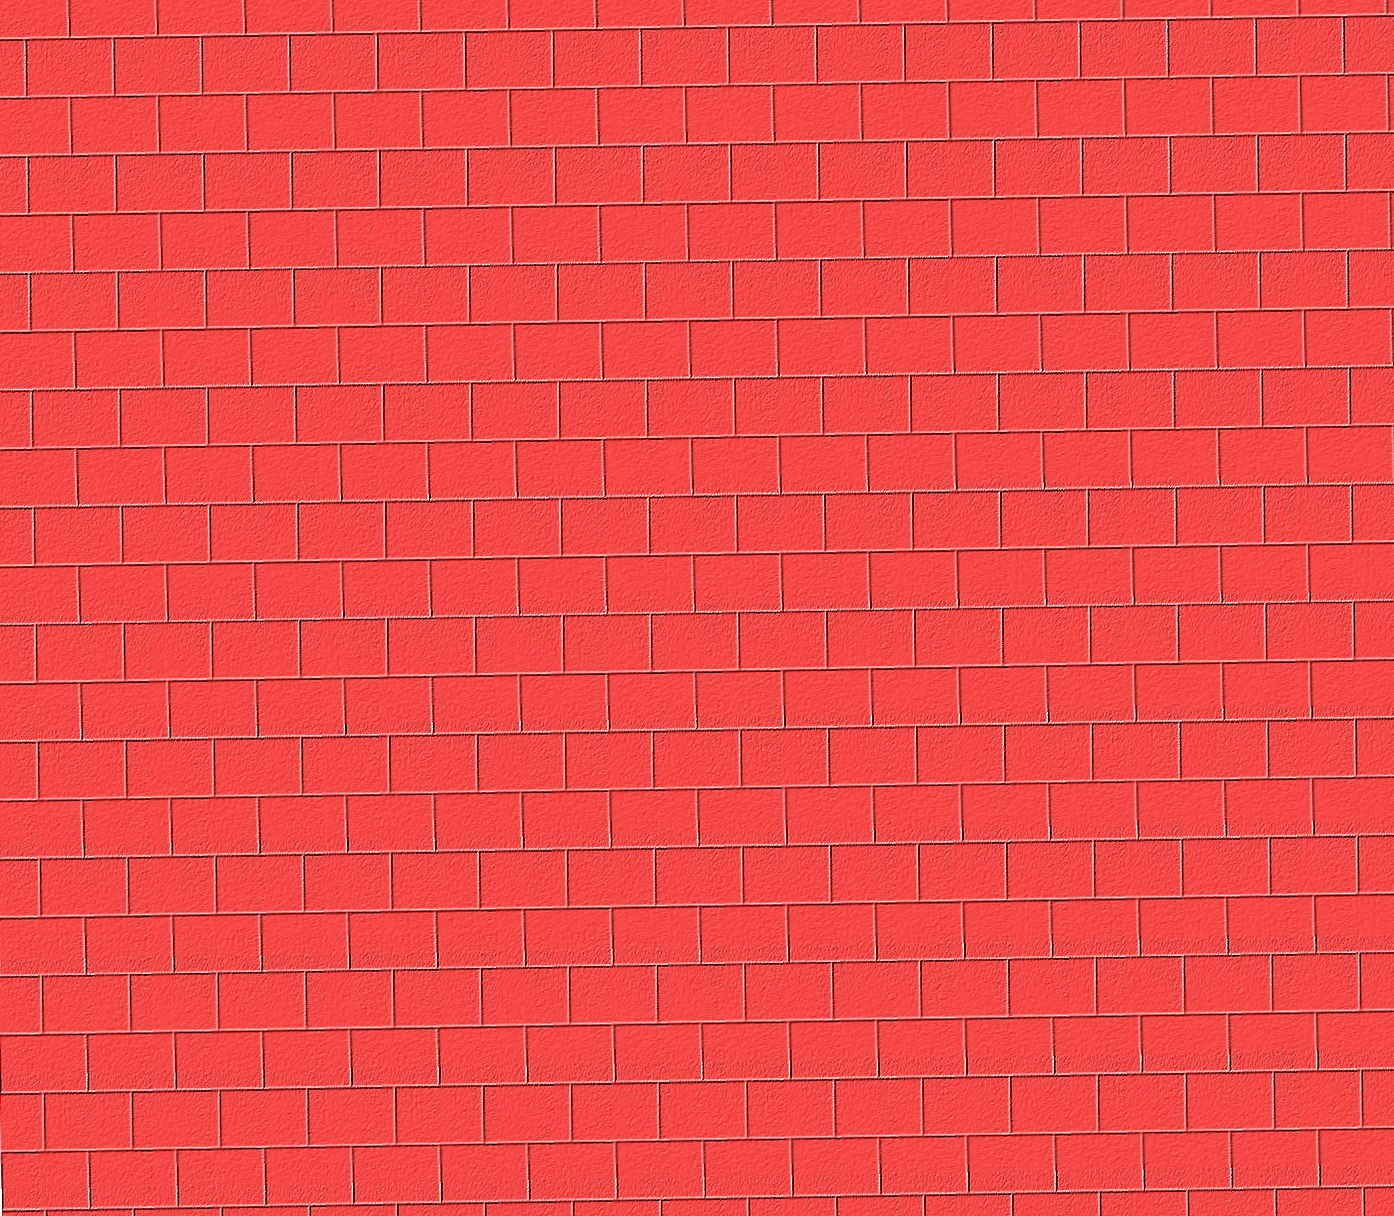 Red Wall iPhone 2018 wallpapers HD quality